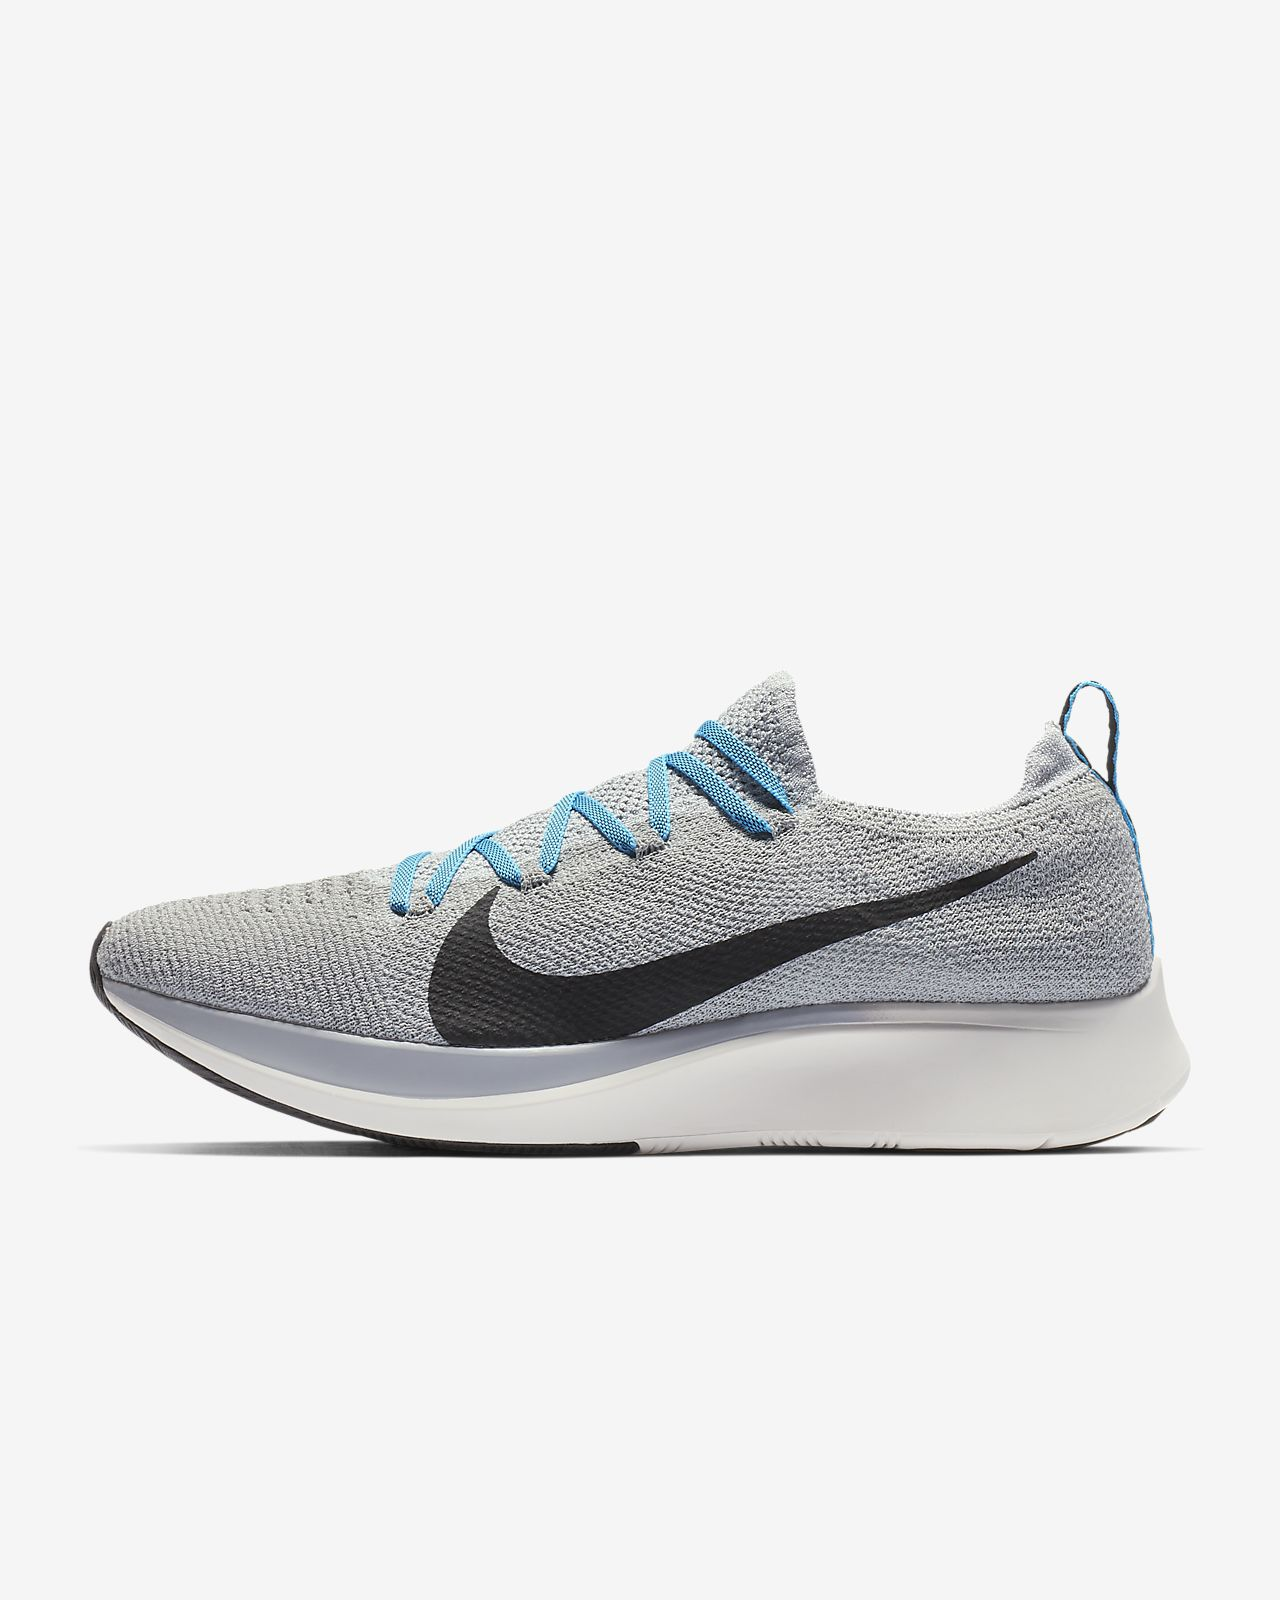 separation shoes e3e5a f3555 ... Nike Zoom Fly Flyknit Men s Running Shoe